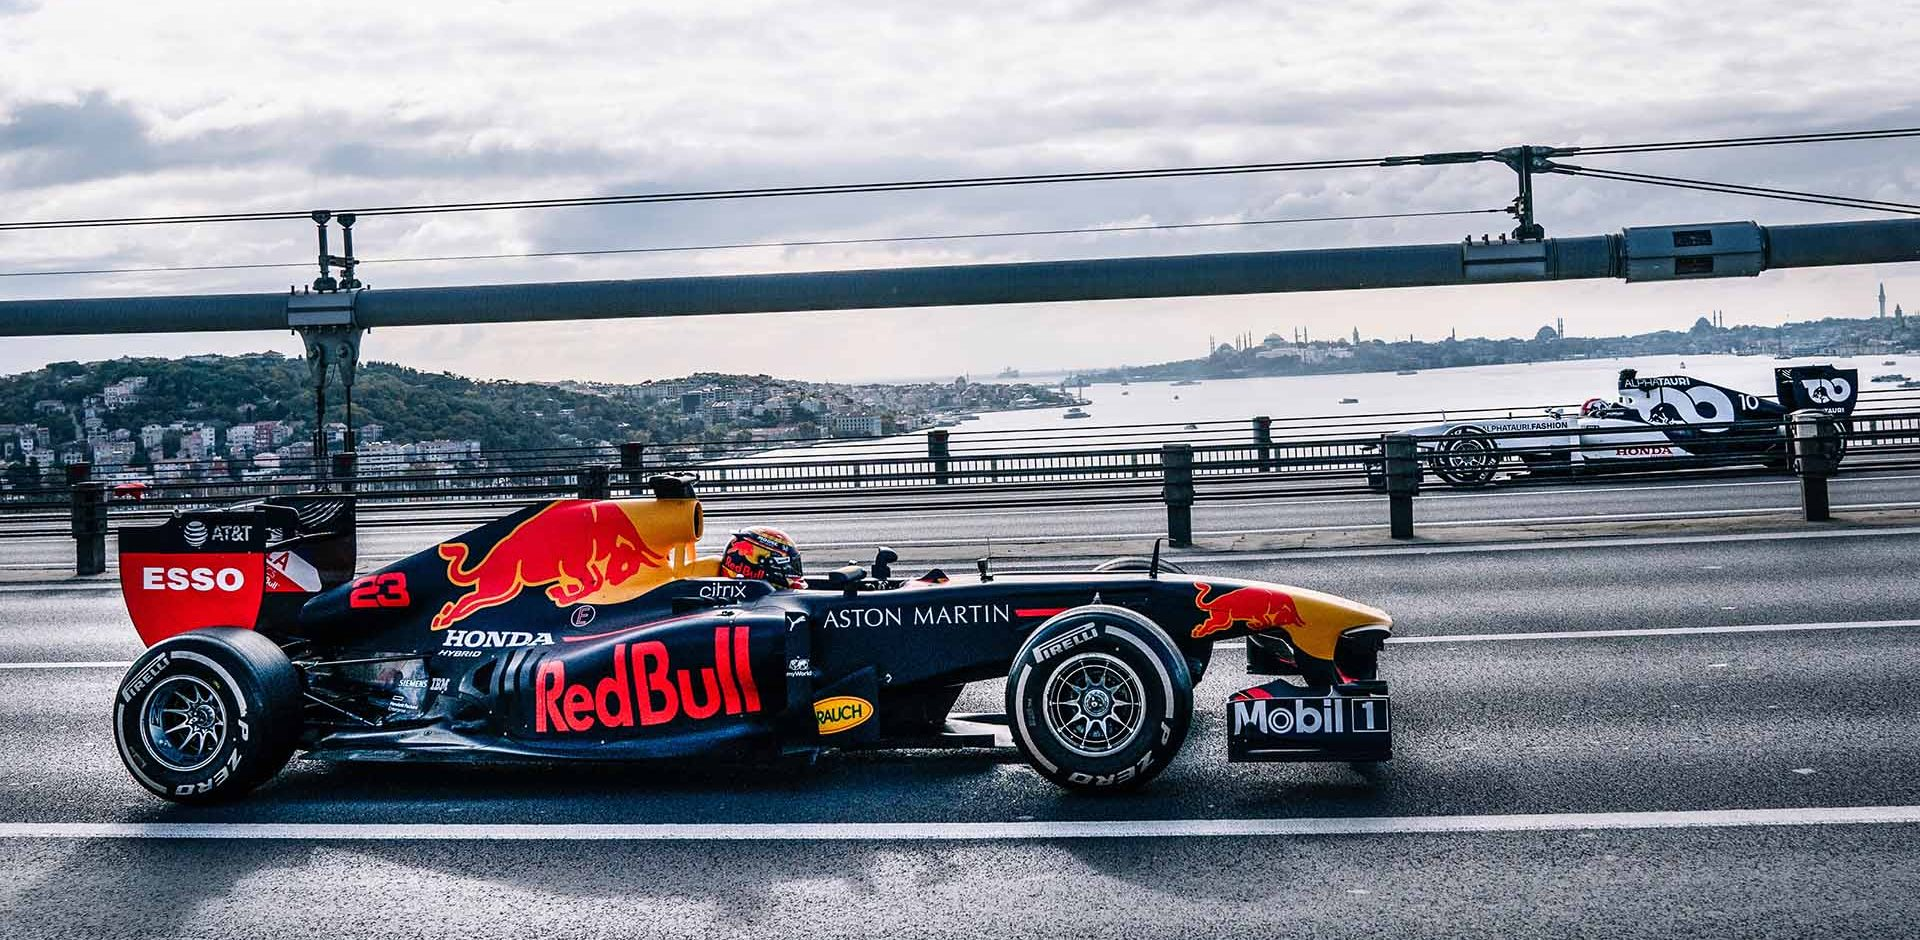 Alexander Albon and Pierre Gasly performs during Project Istanbulls in Istanbul, Turkey on November 10, 2020 // Nuri Yilmazer/Red Bull Content Pool // SI202011110239 // Usage for editorial use only //